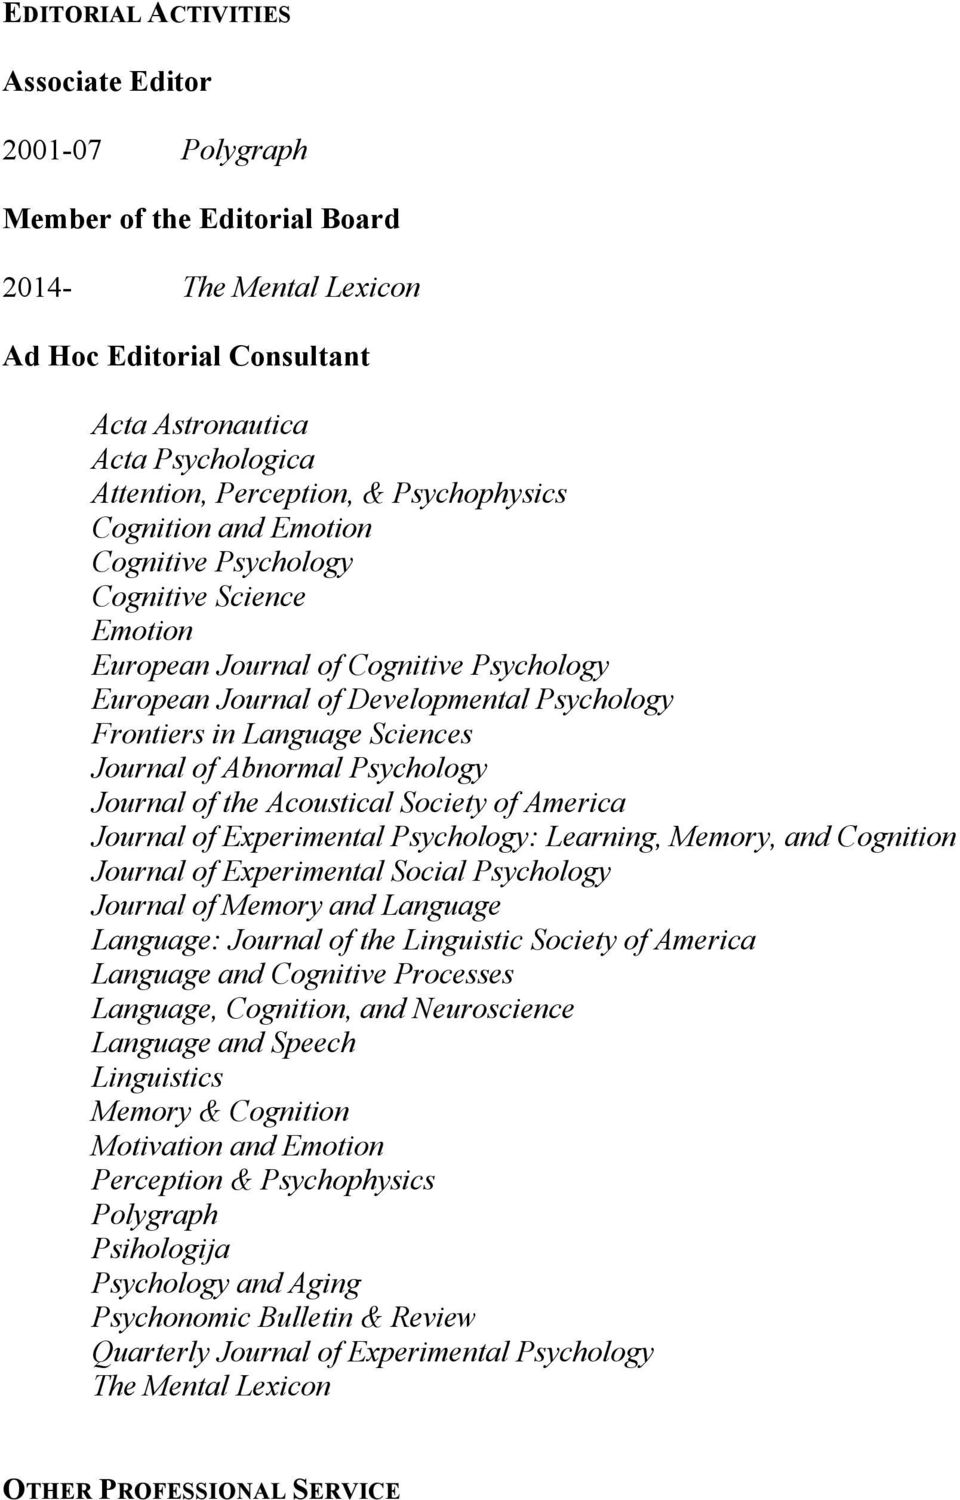 Journal of Abnormal Psychology Journal of the Acoustical Society of America Journal of Experimental Psychology: Learning, Memory, and Cognition Journal of Experimental Social Psychology Journal of